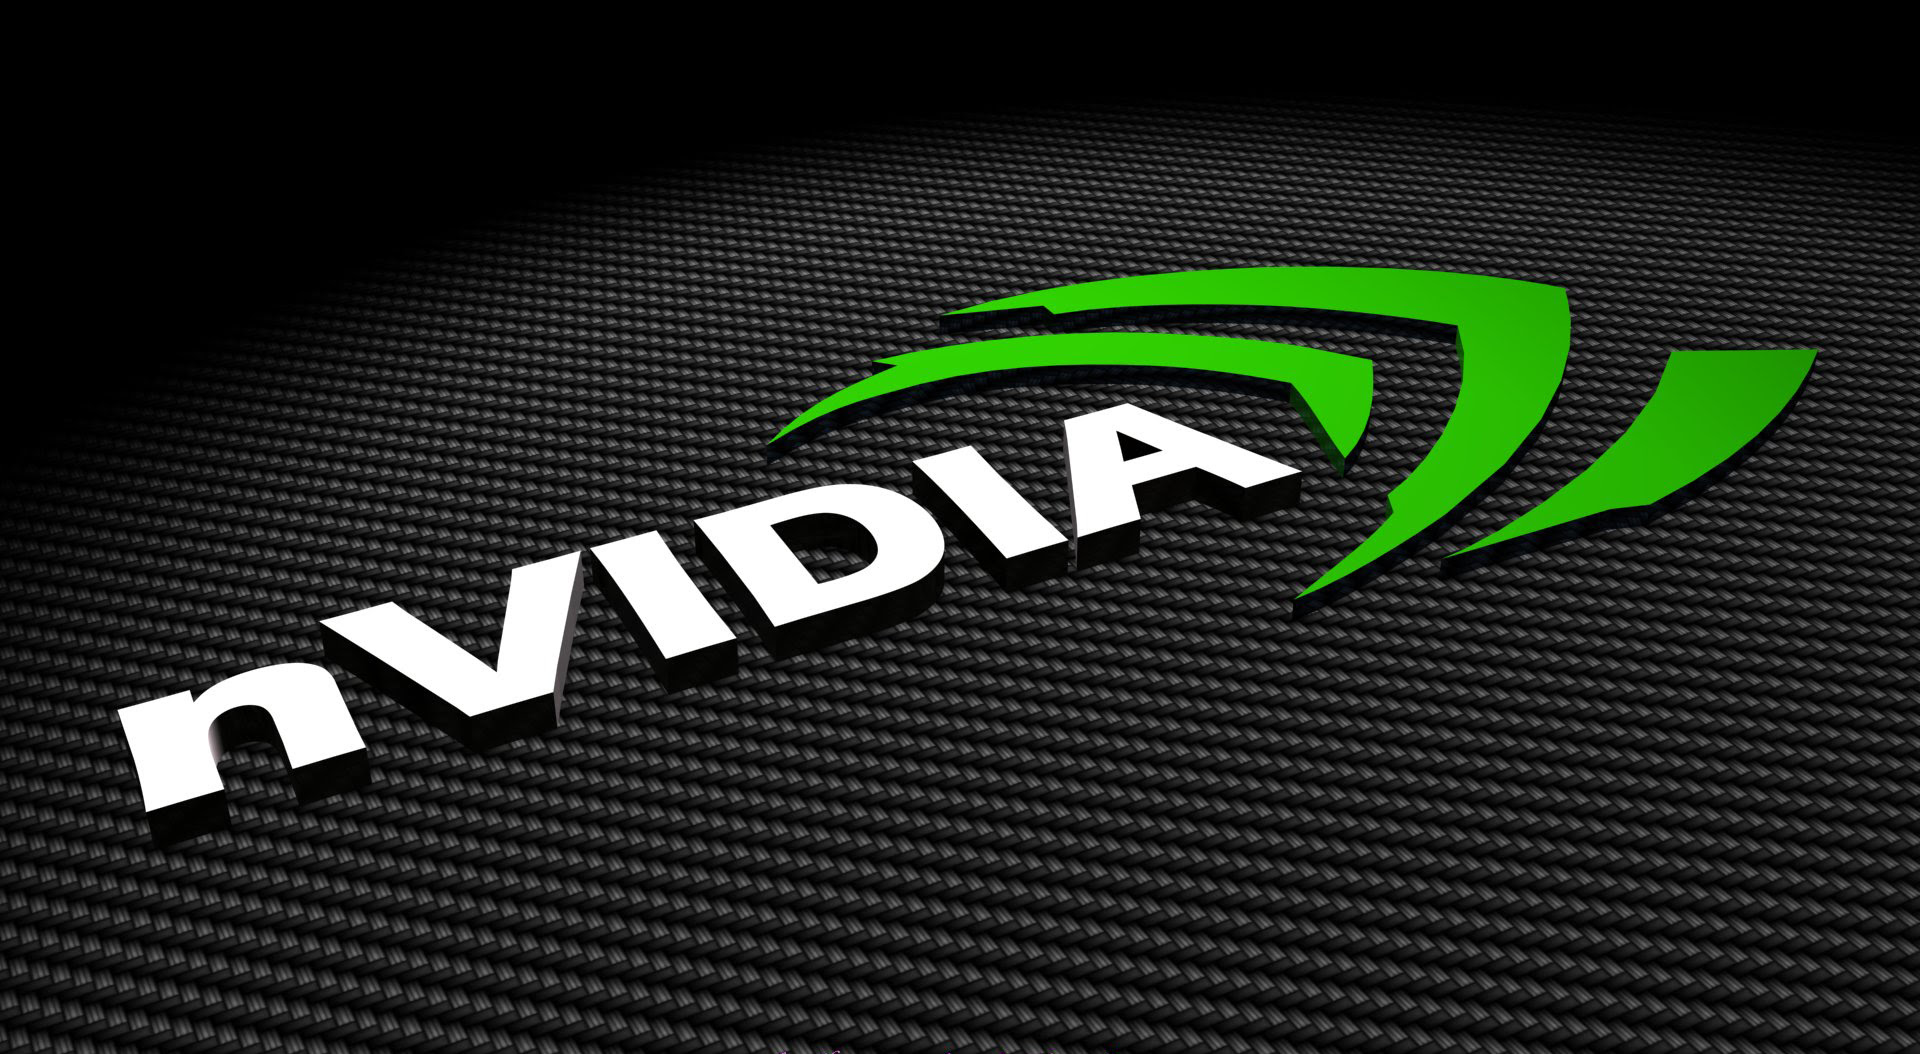 Free Nvidia HD Backgrounds   HD Wallpapers, Backgrounds ...